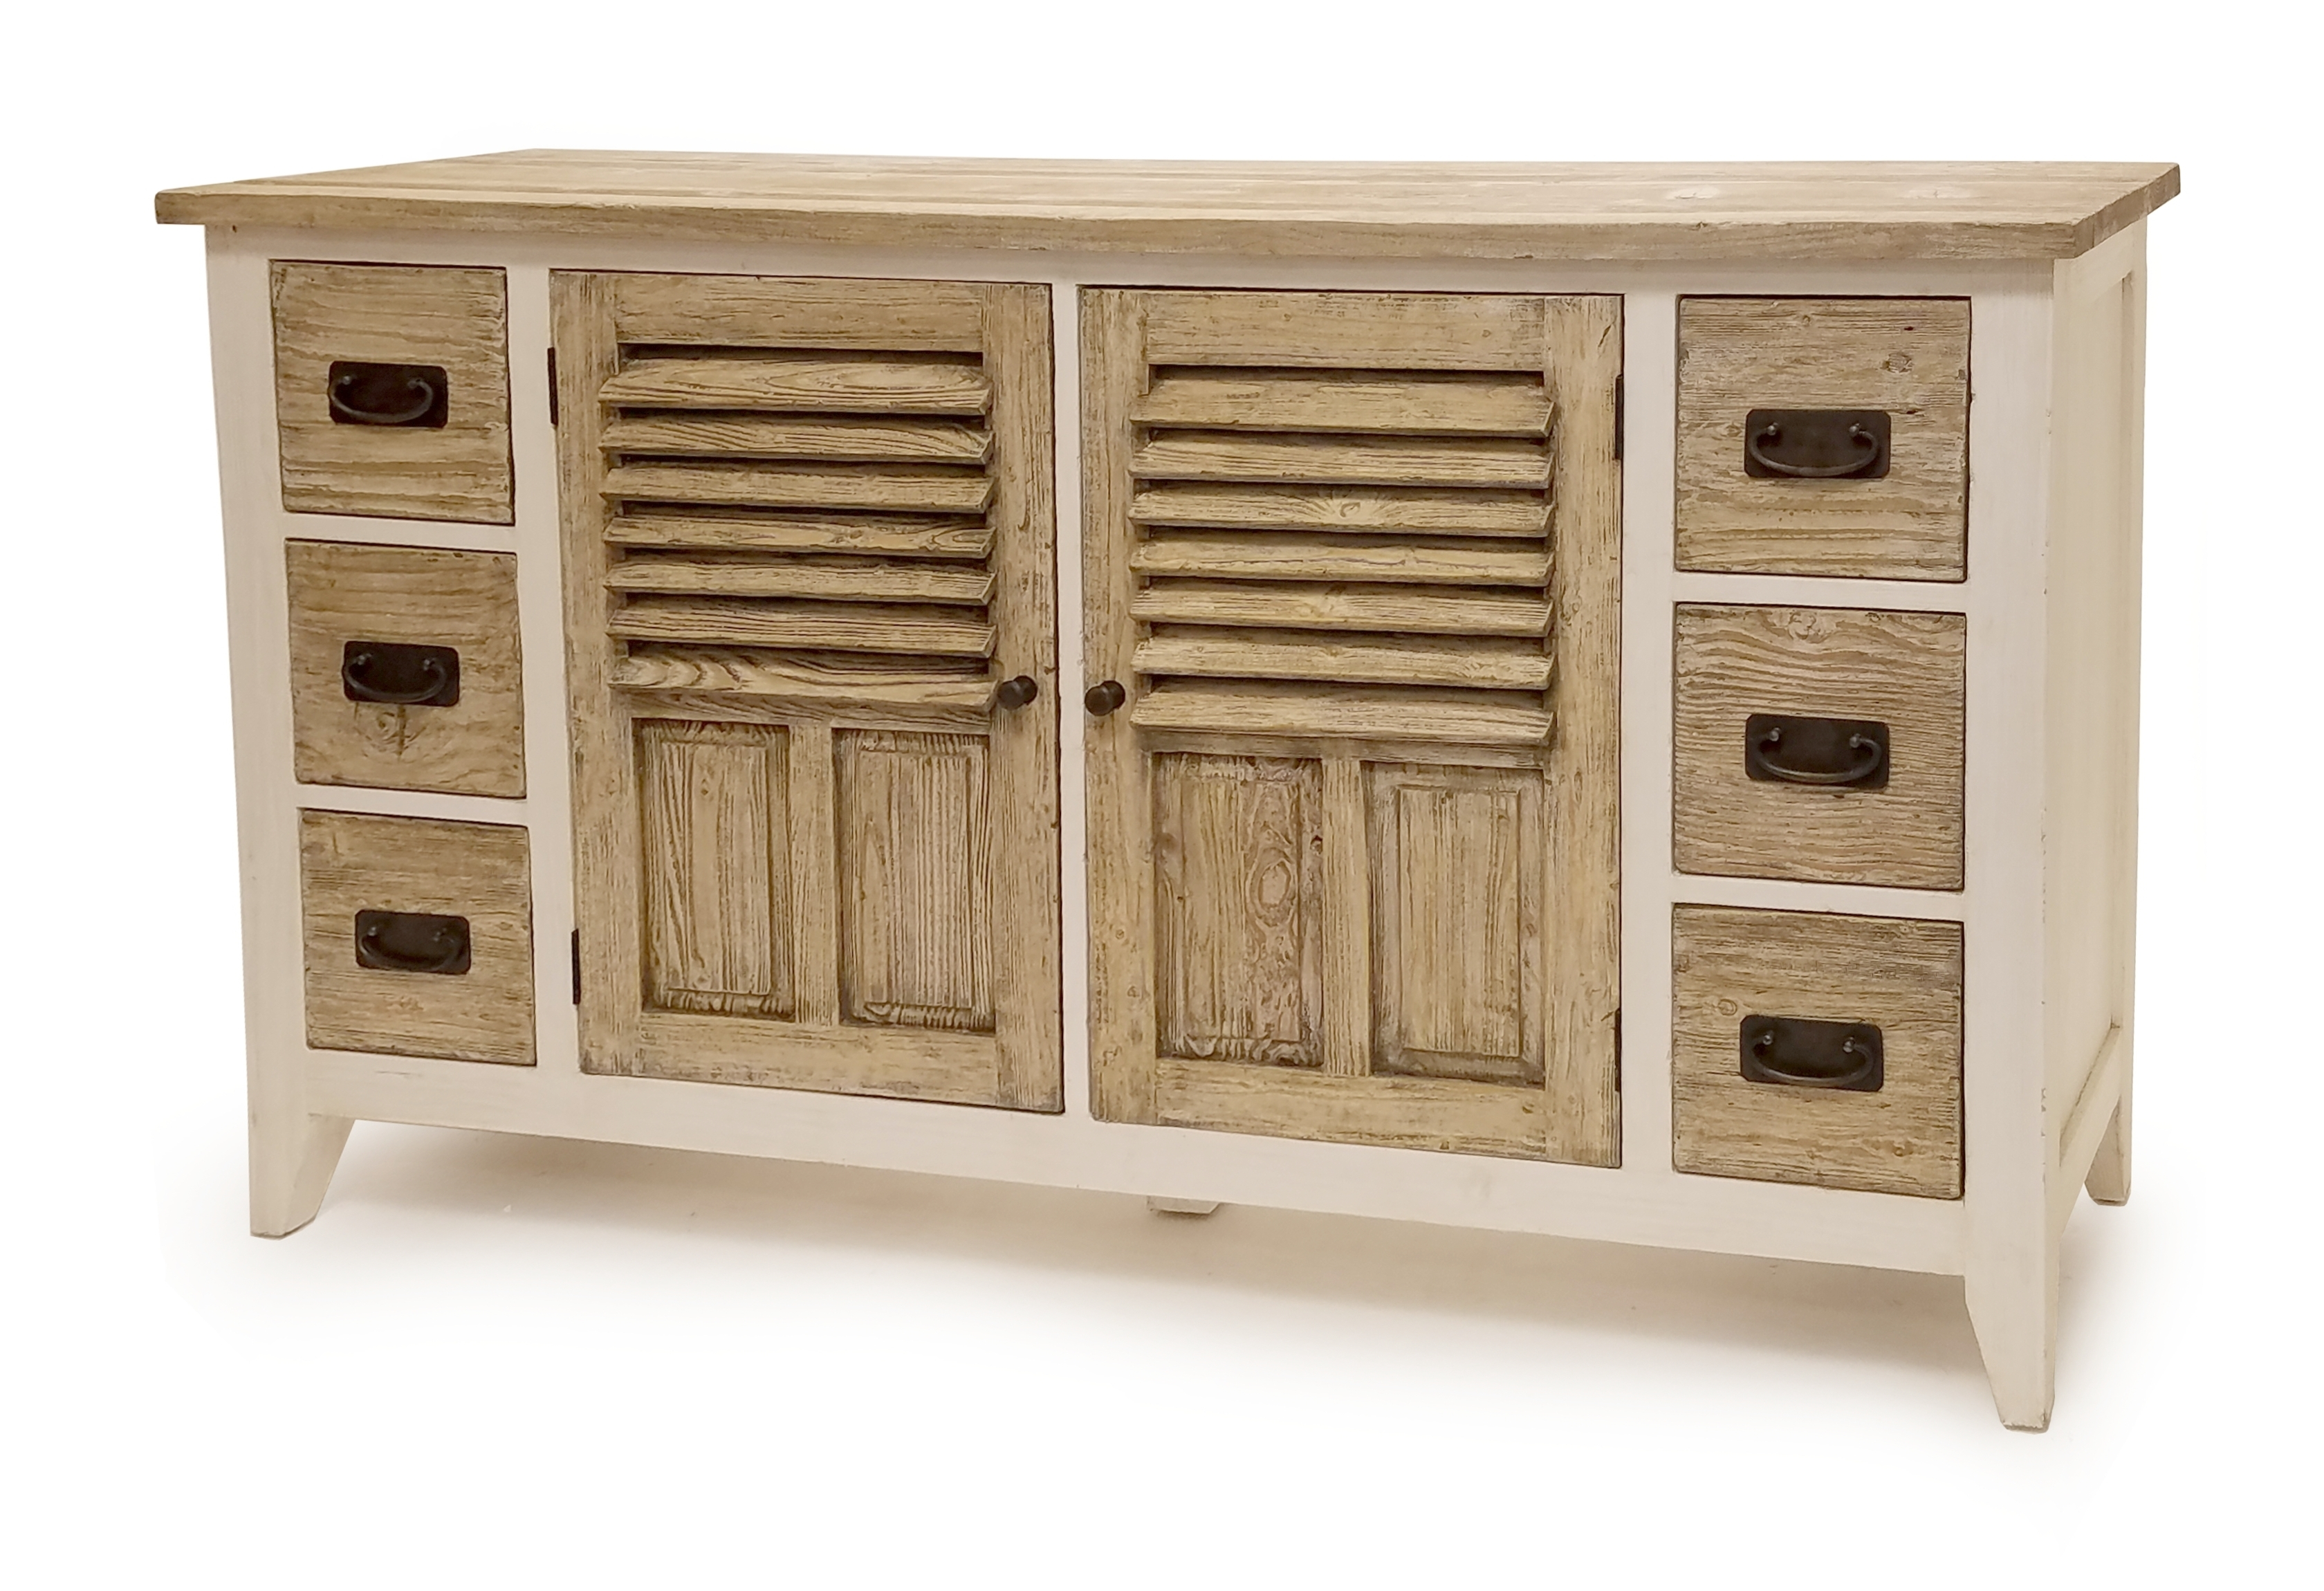 Consoles & Cabinets | Redbarn Furniture with regard to 2-Door/2-Drawer Cast Jali Sideboards (Image 6 of 30)